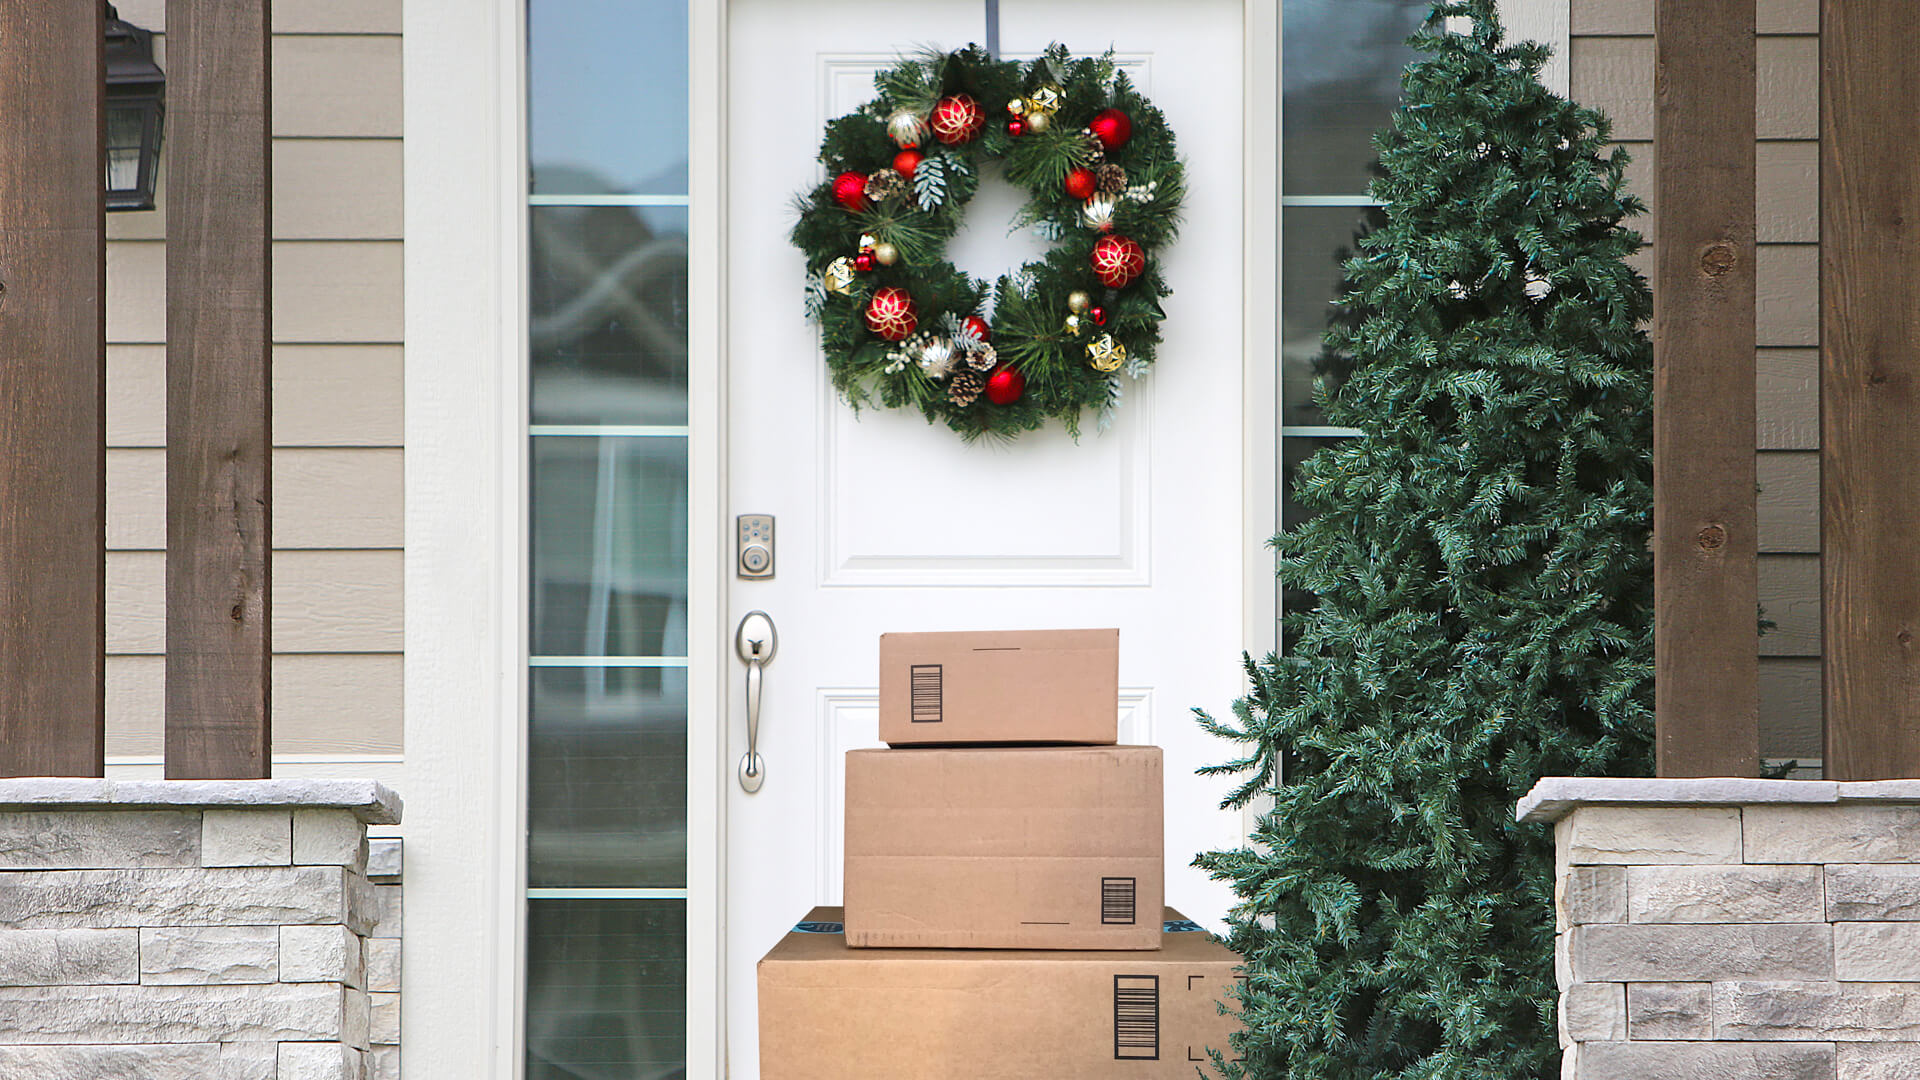 Return Policies for Gifts Your Friends and Family Bought Online